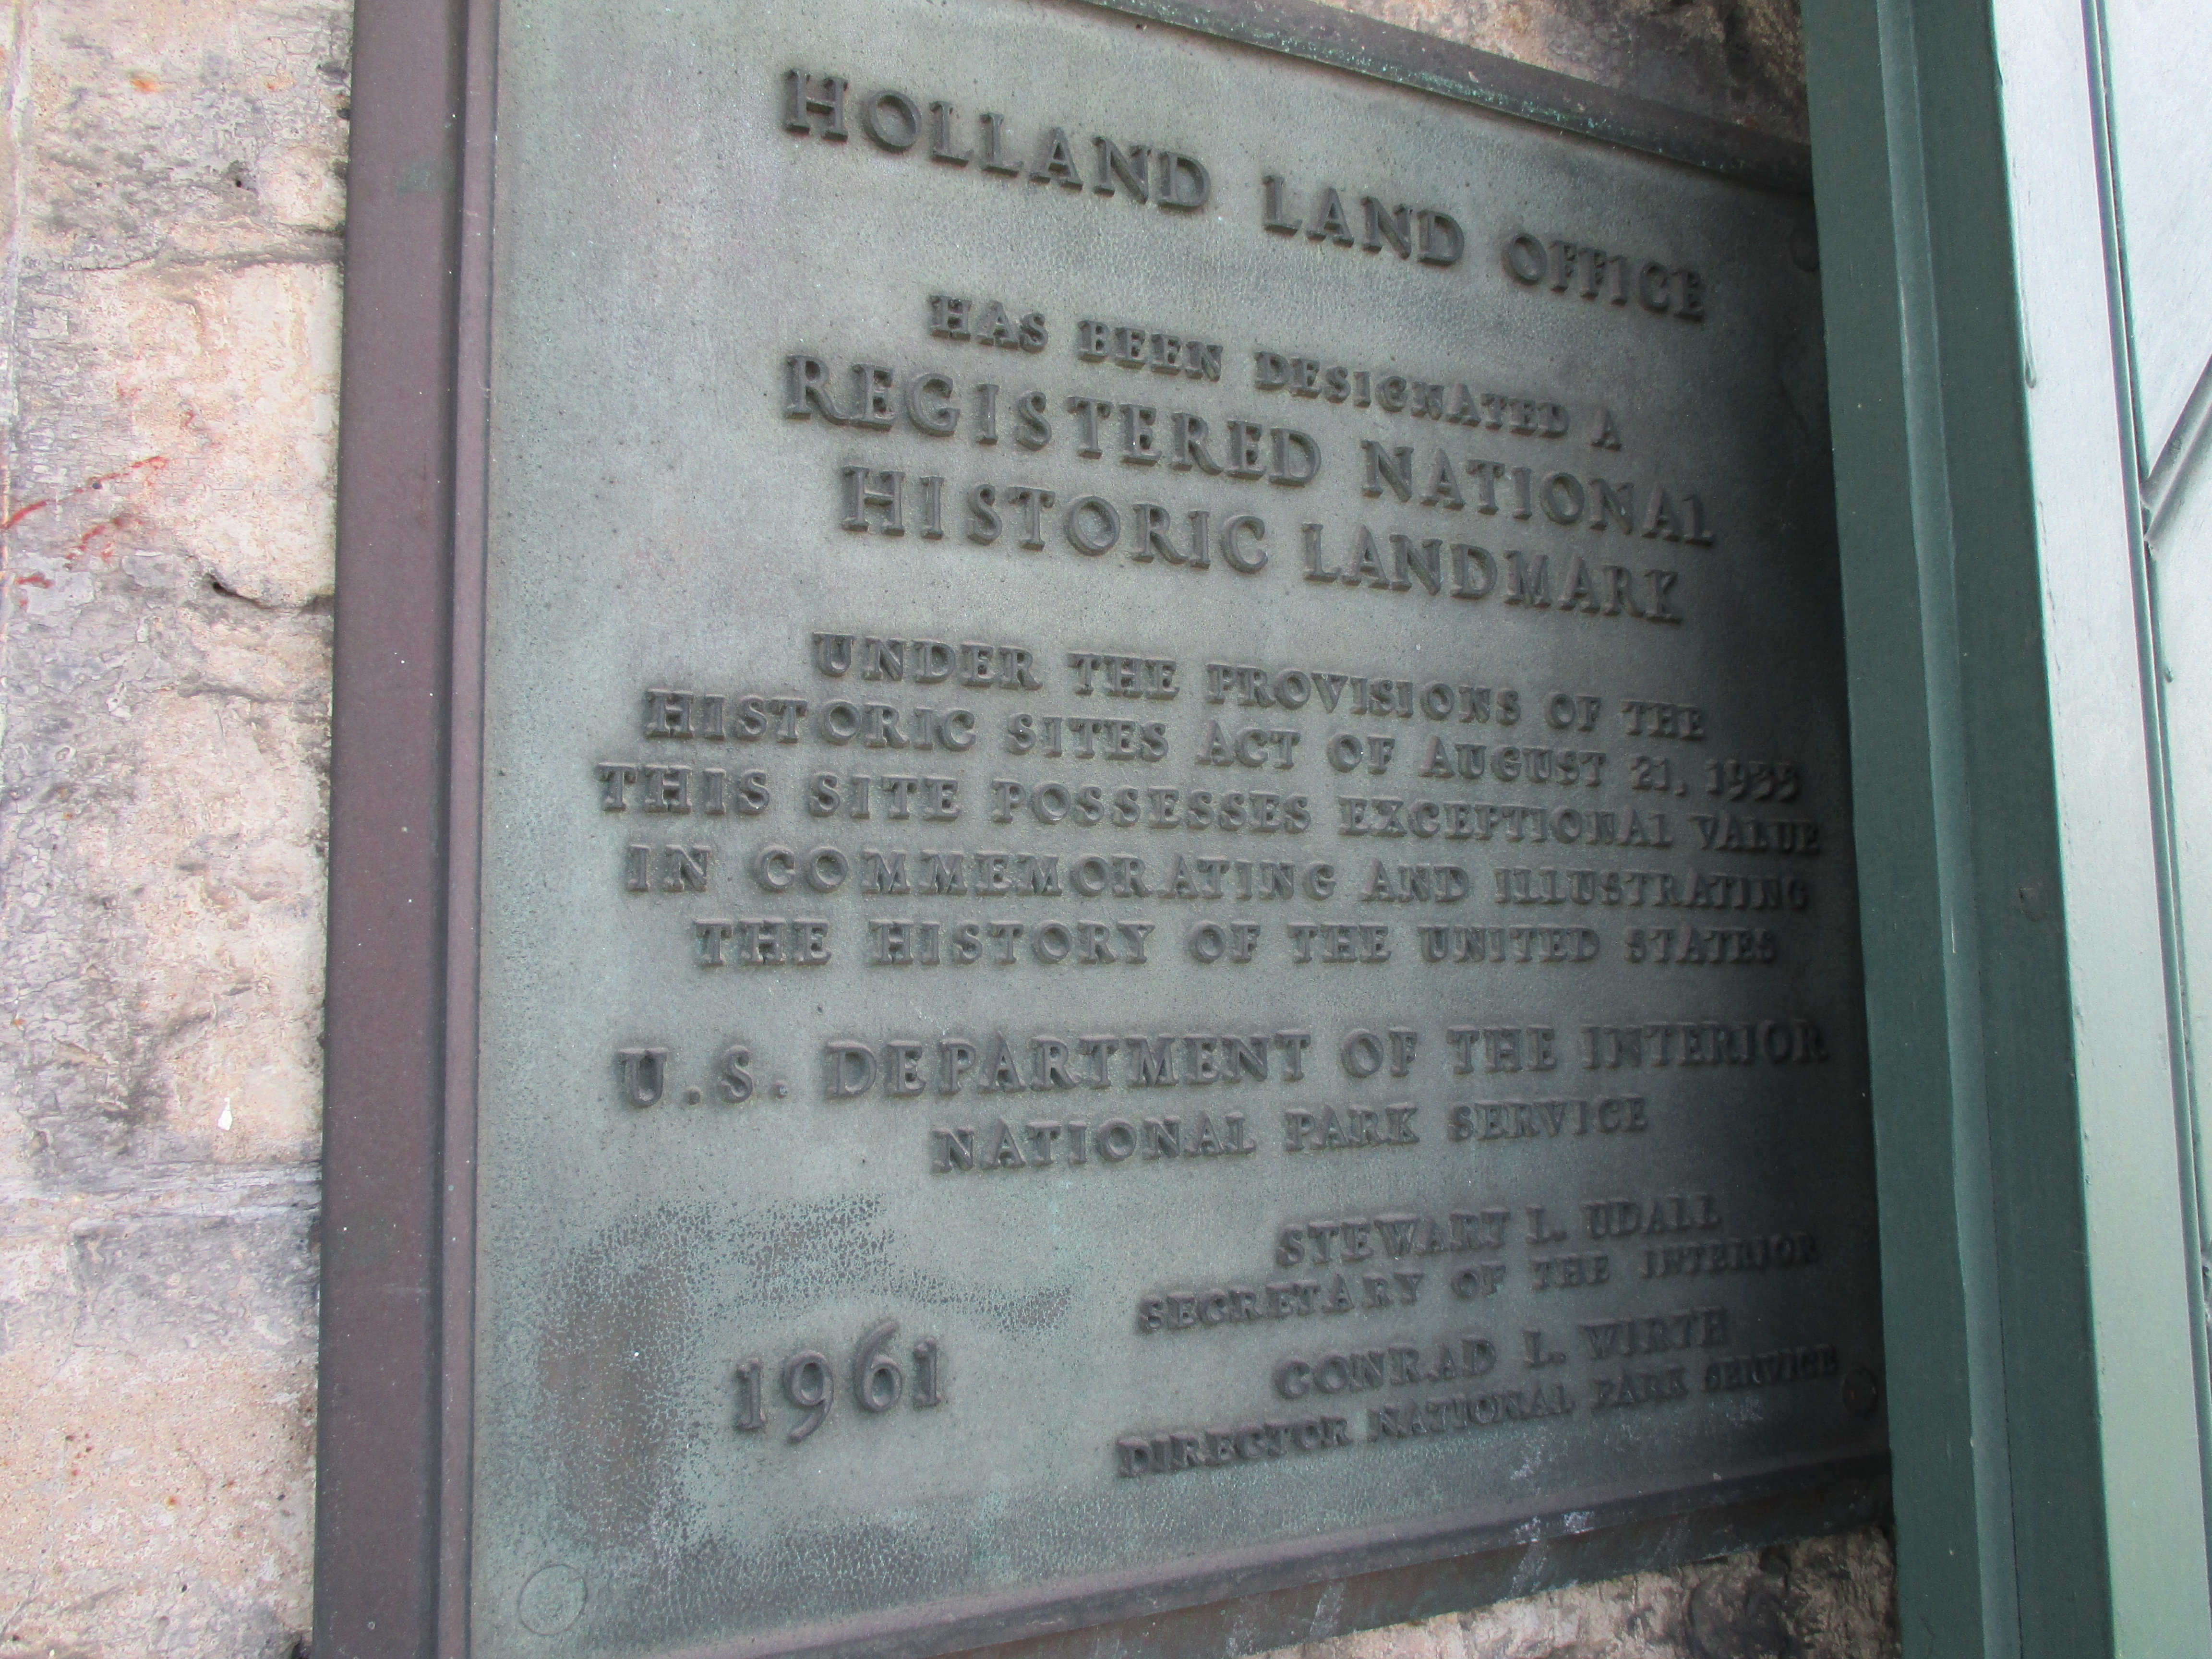 Registered National Historic Landmark Plaque